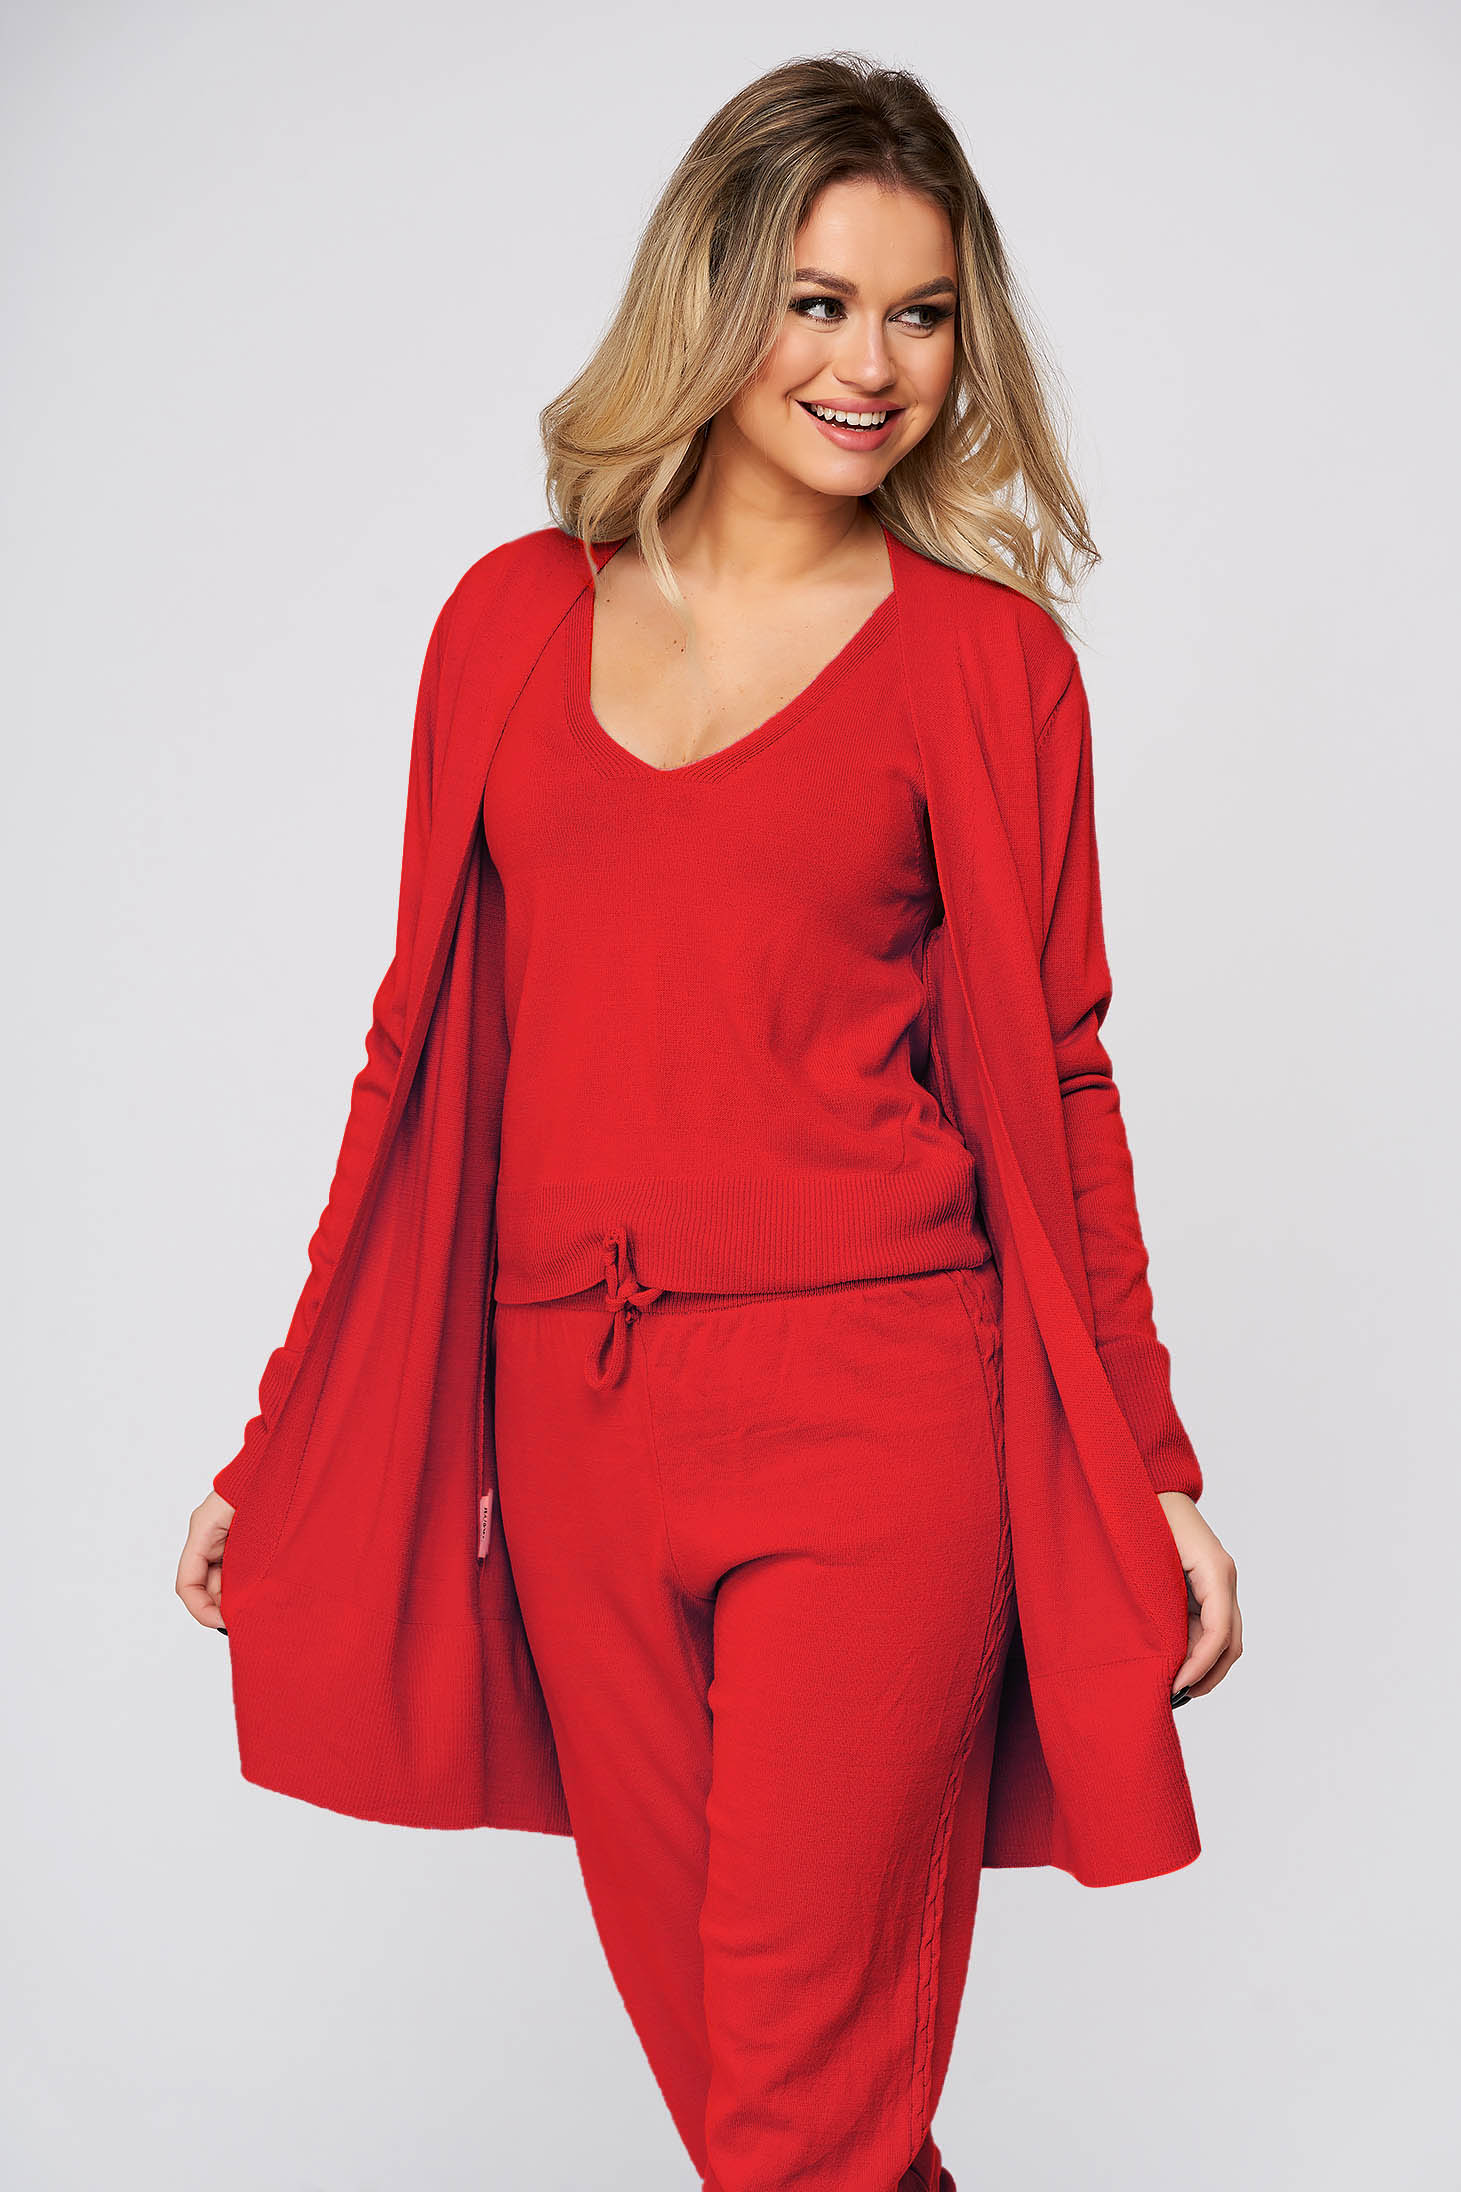 Casual knitted fabric red sport 2 pieces women`s sweater